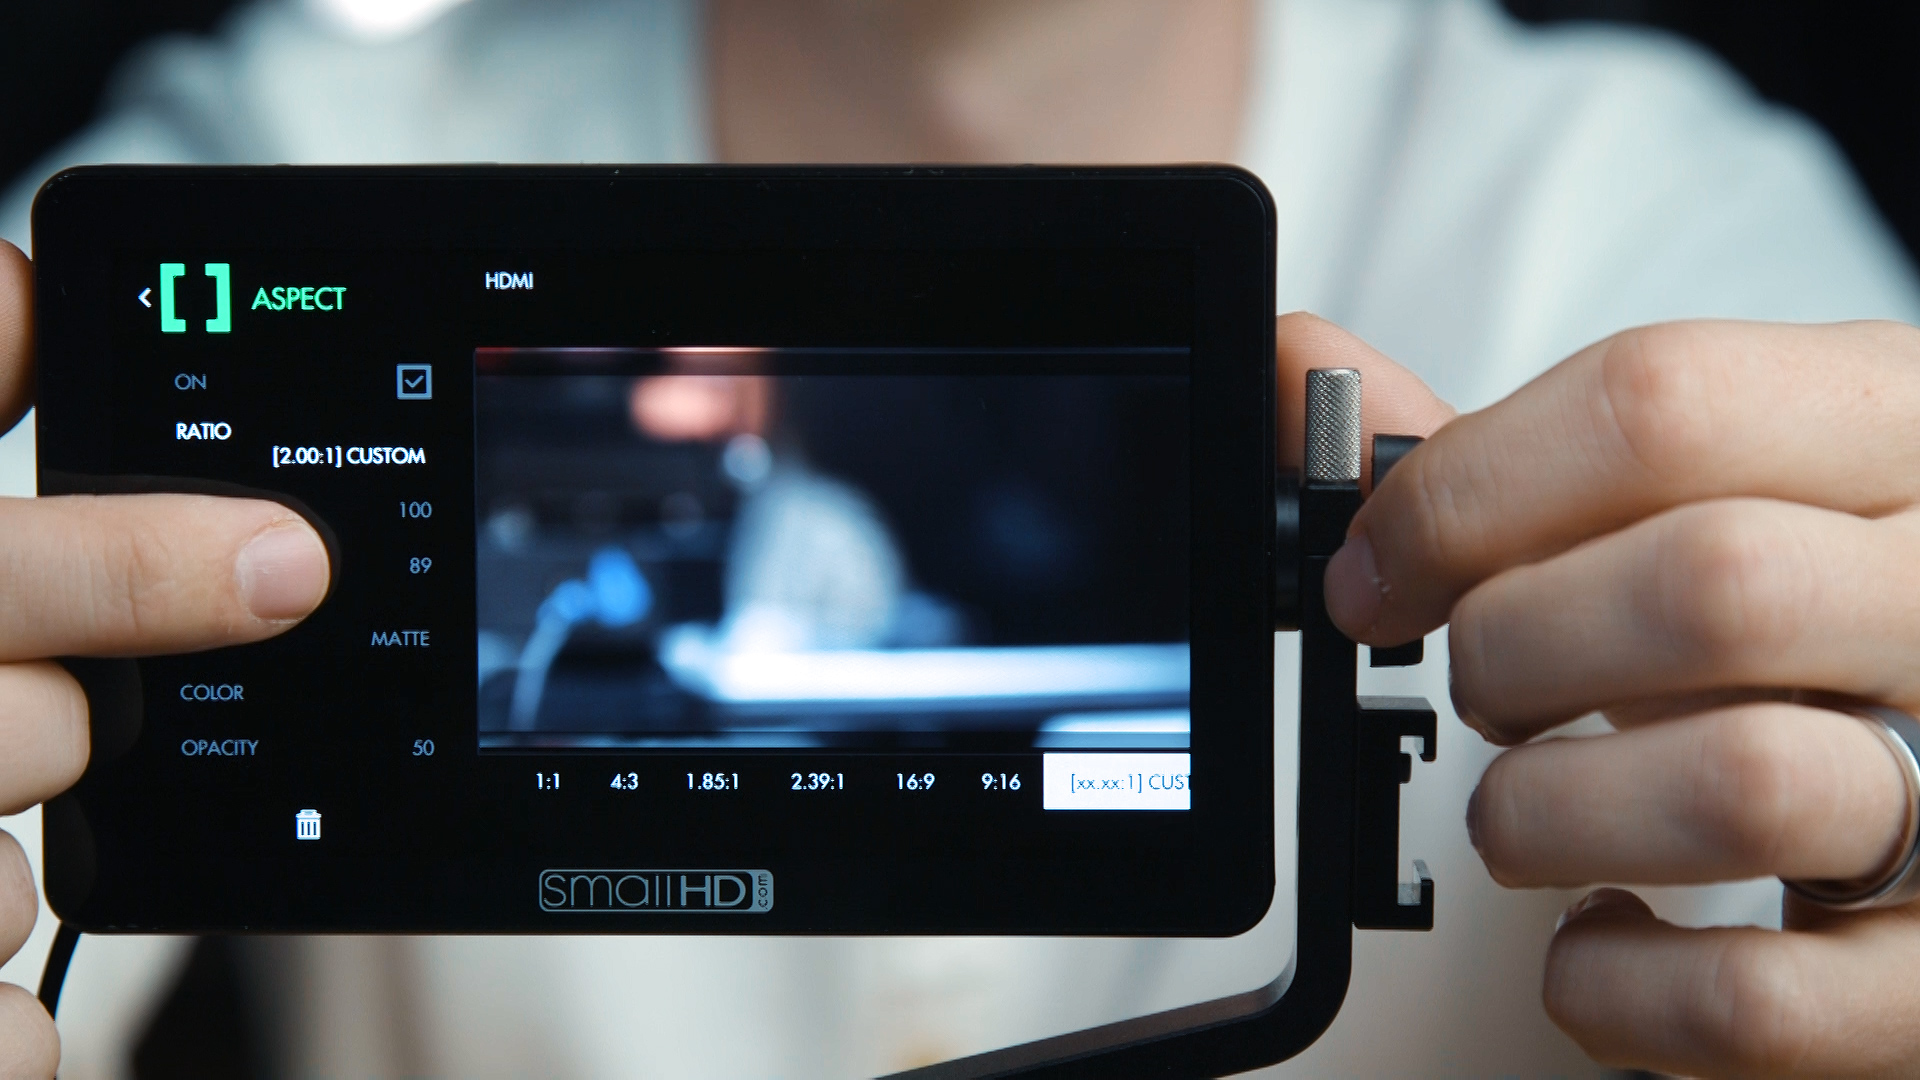 SmallHD Focus Review - V1.00_11_50_17.Still009.jpg